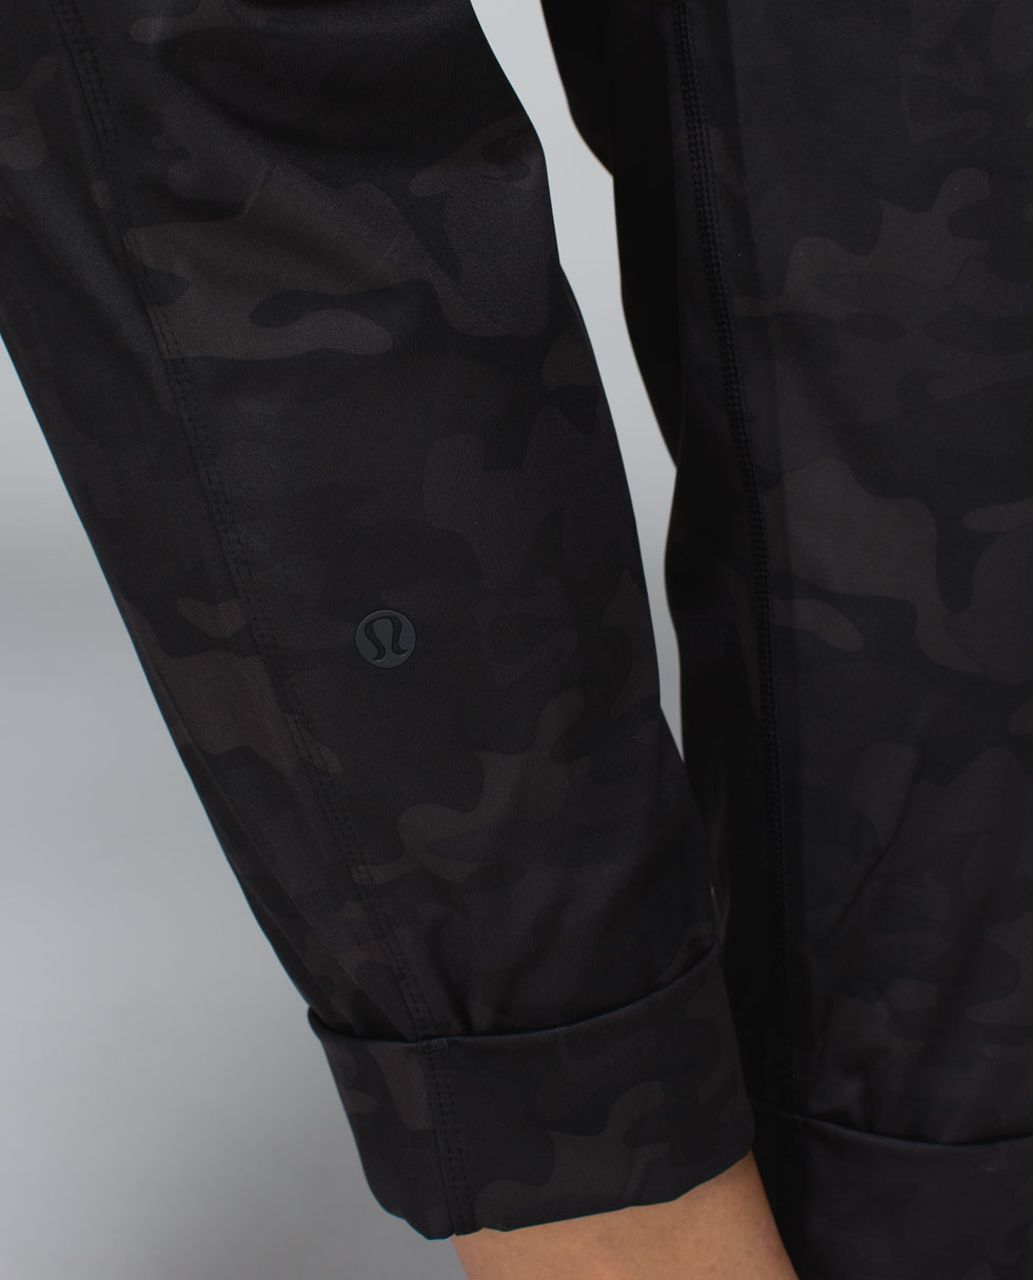 Lululemon Jet Crop *Print - Savasana Camo 20cm New Black